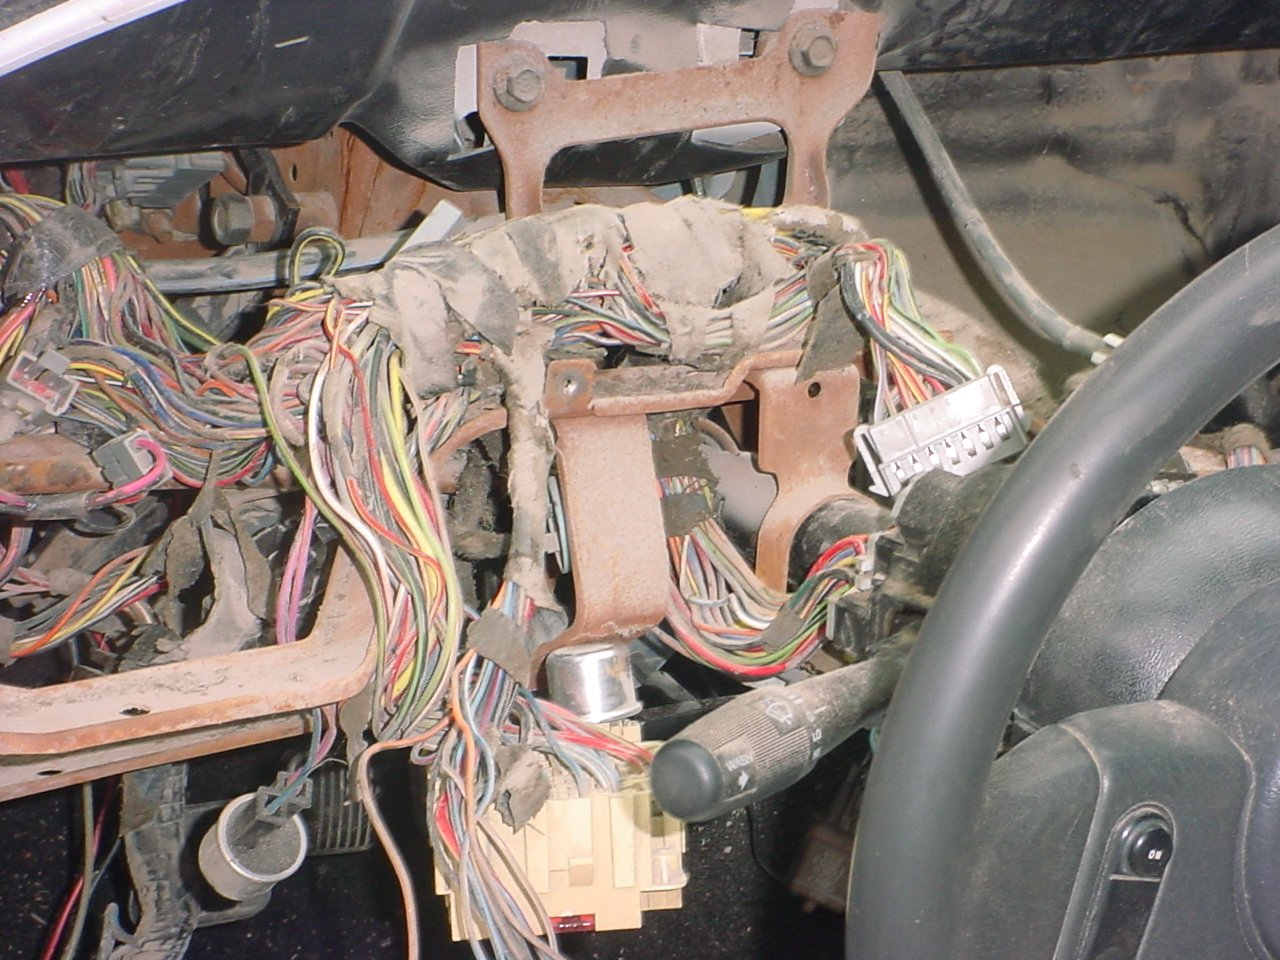 12808d1134269196 underdash wiring diagram dsc01663 underdash wiring diagram ford mustang forum 1969 mustang under dash wire harness at honlapkeszites.co